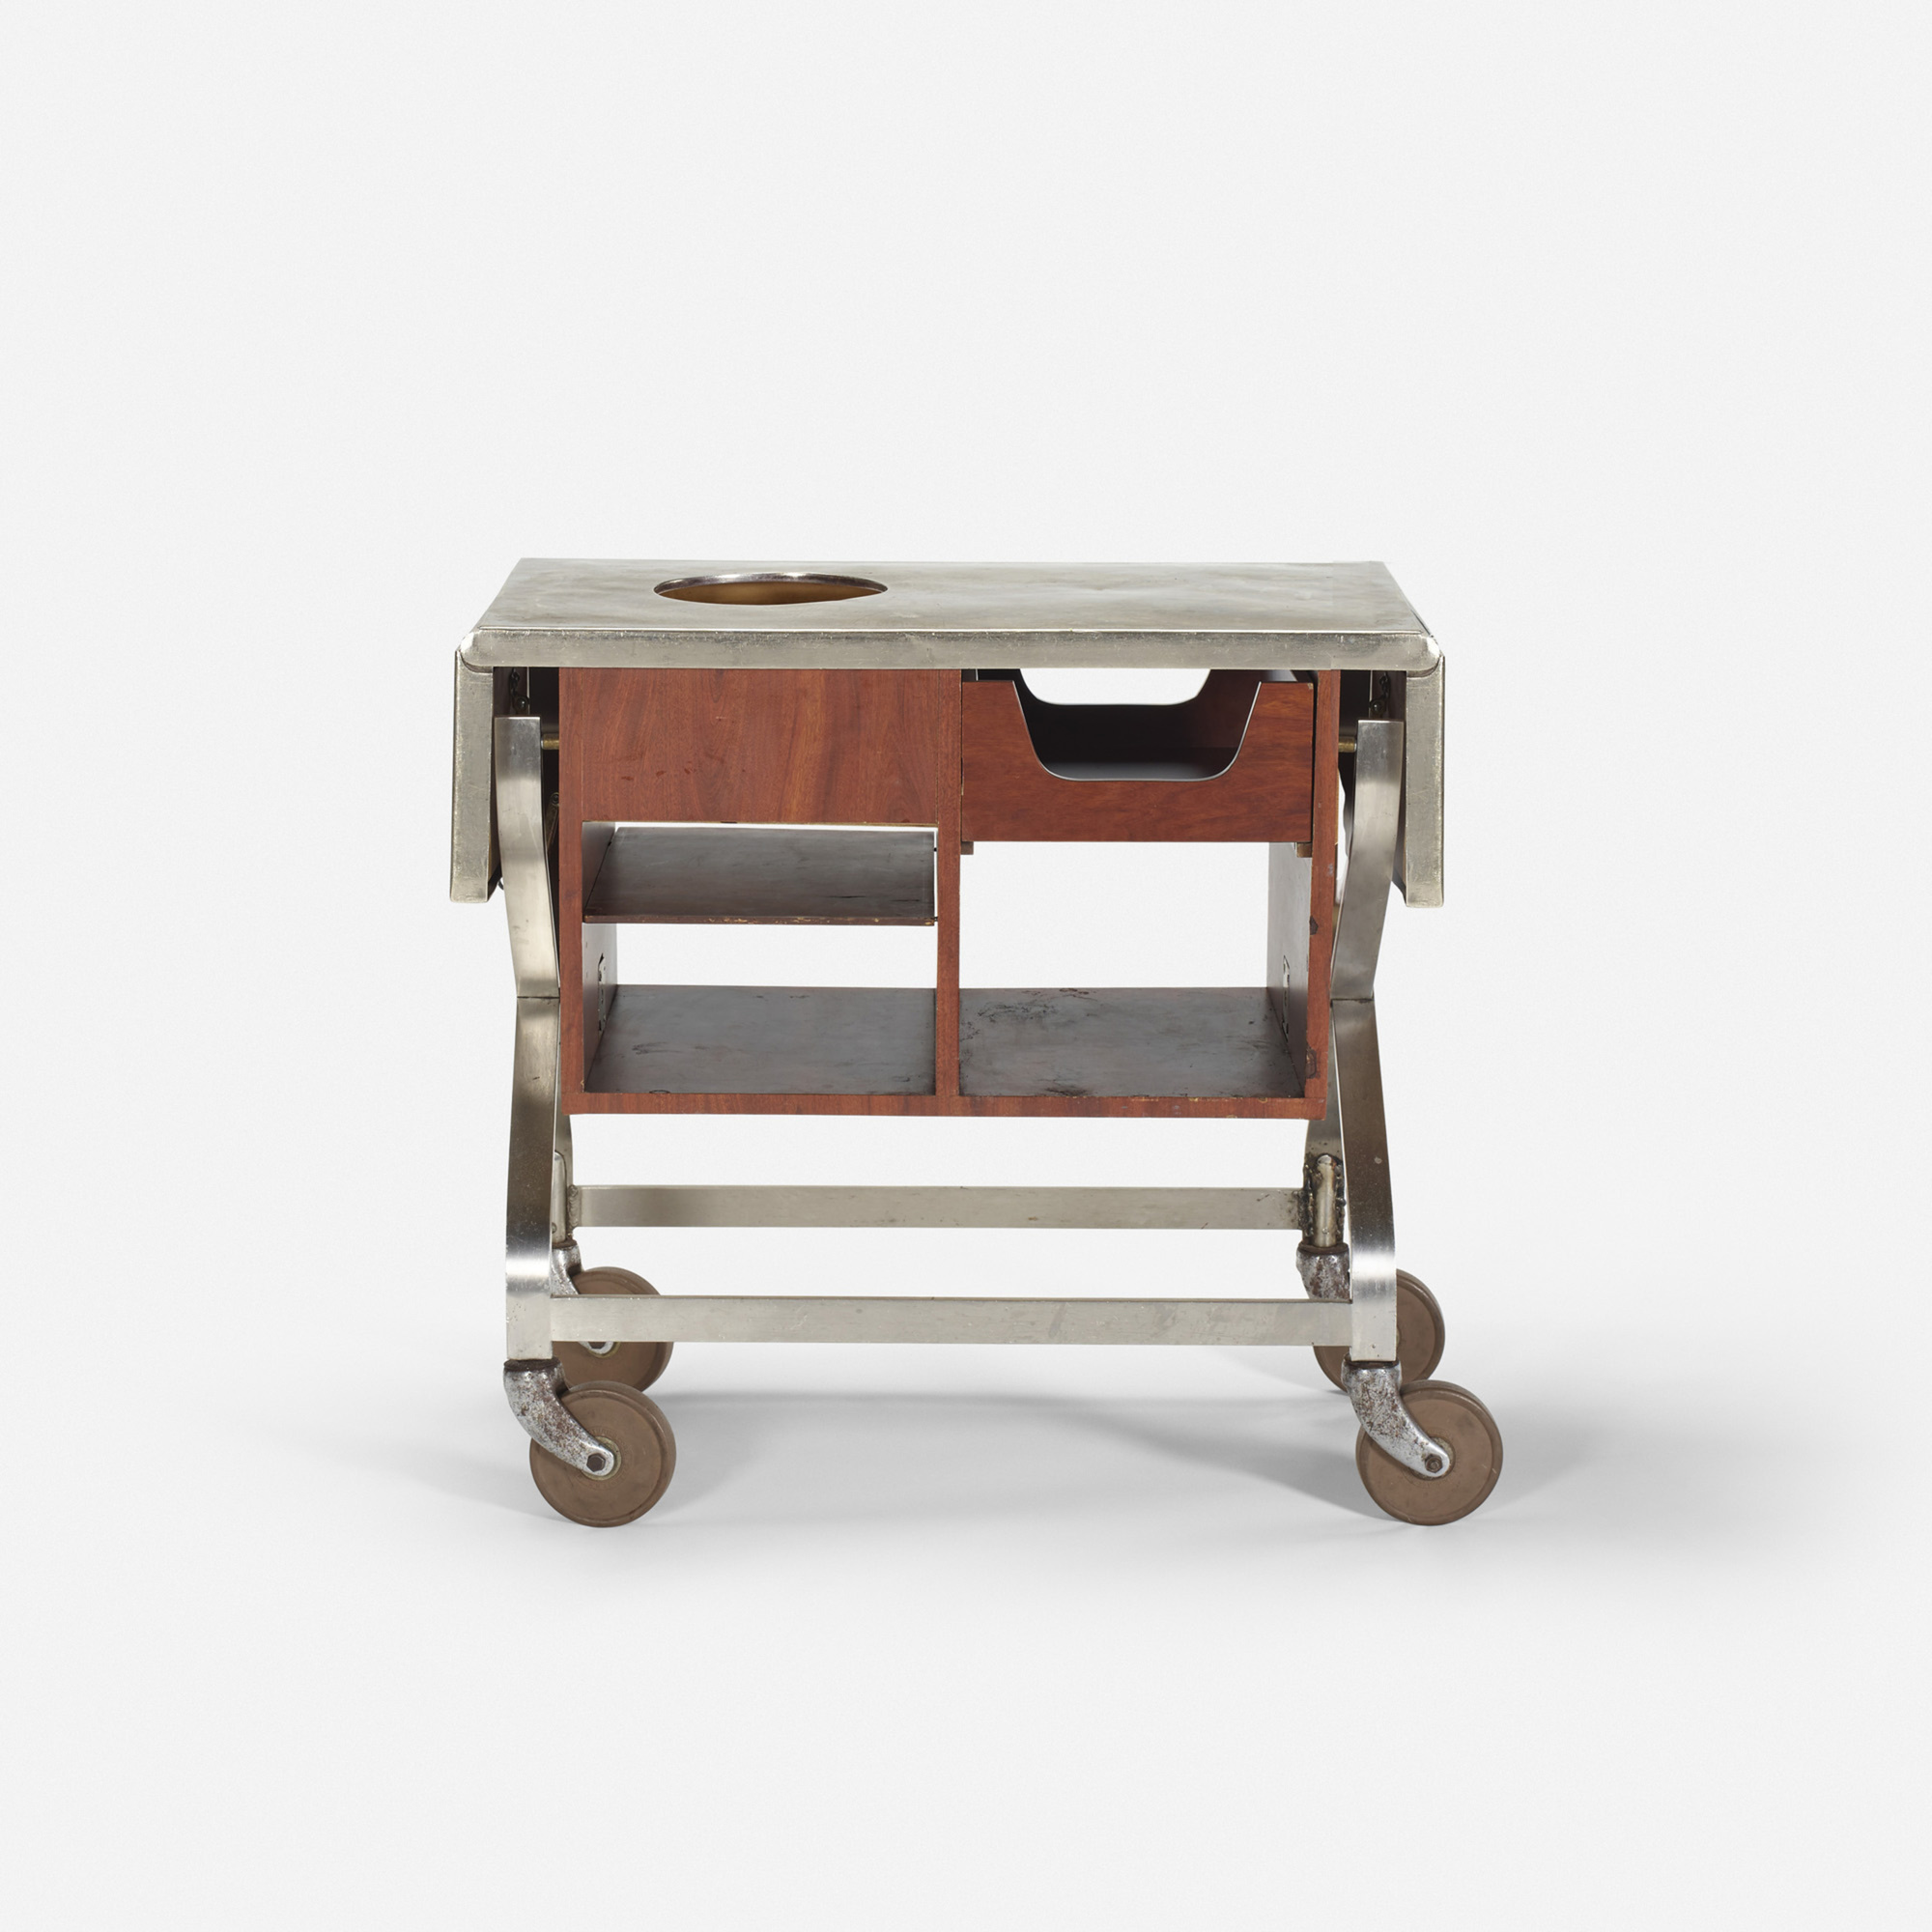 605: Garth and Ada Louise Huxtable / Serving cart from The Four Seasons (1 of 1)